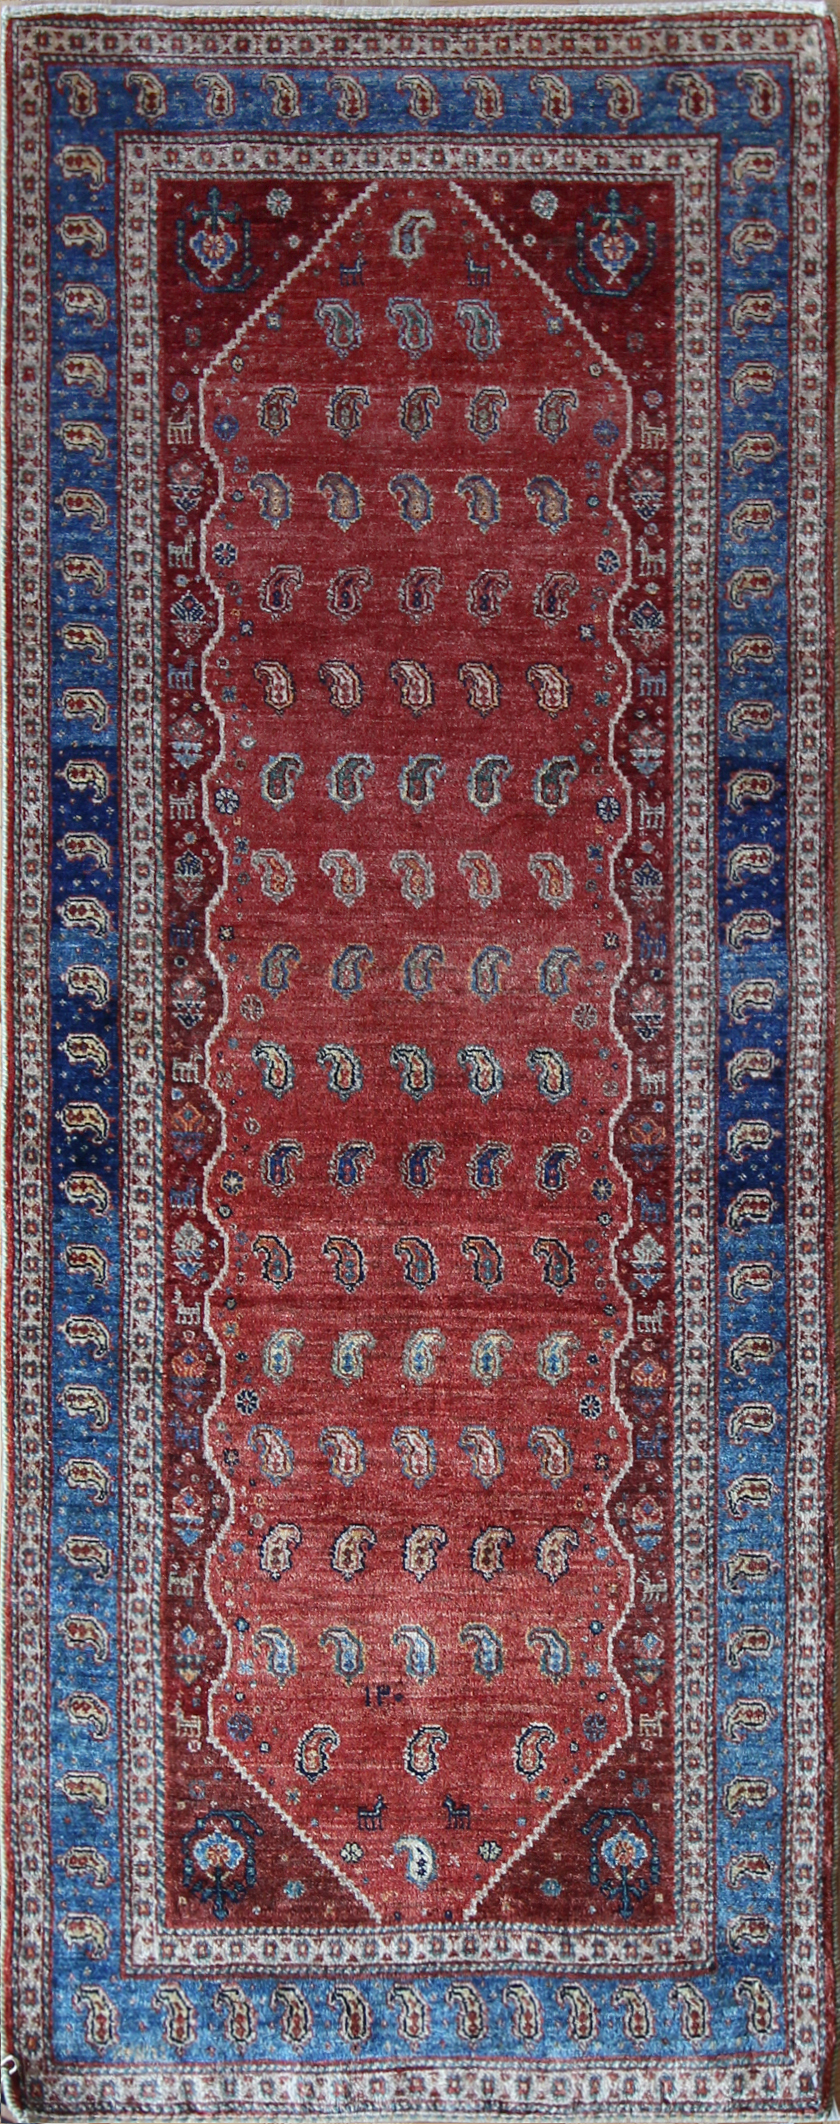 608 Luri Bakhtiari, woven by Nomads in S.W. Persia, 2'9'' x 7' 2